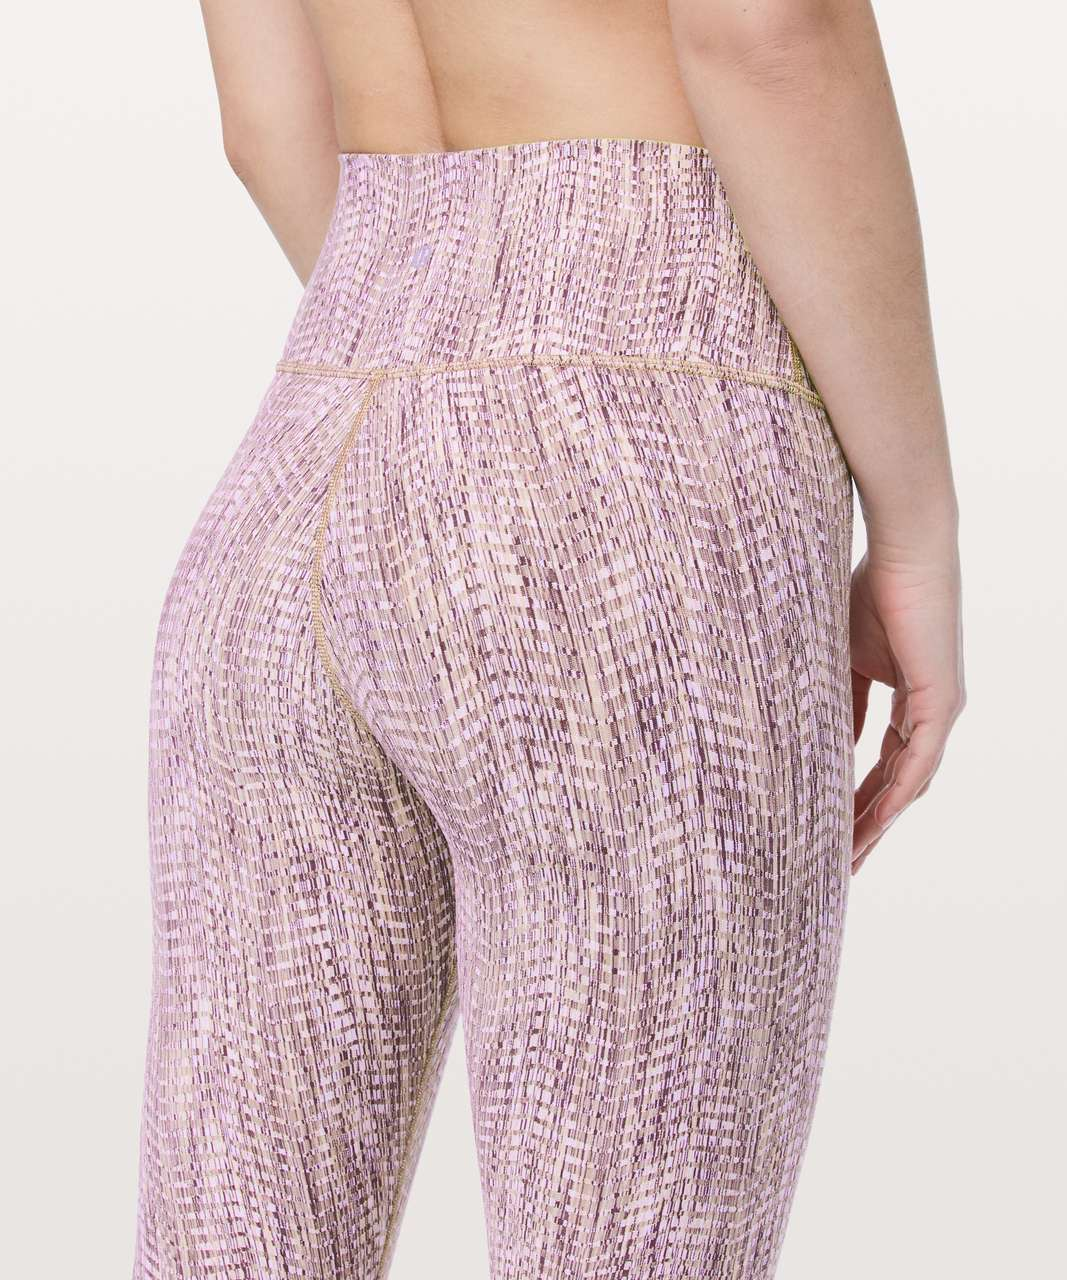 "Lululemon Wunder Under High-Rise 7/8 Tight *Full-On Luon 25"" - Arrow Jacquard Antique Bark Copper Coil"